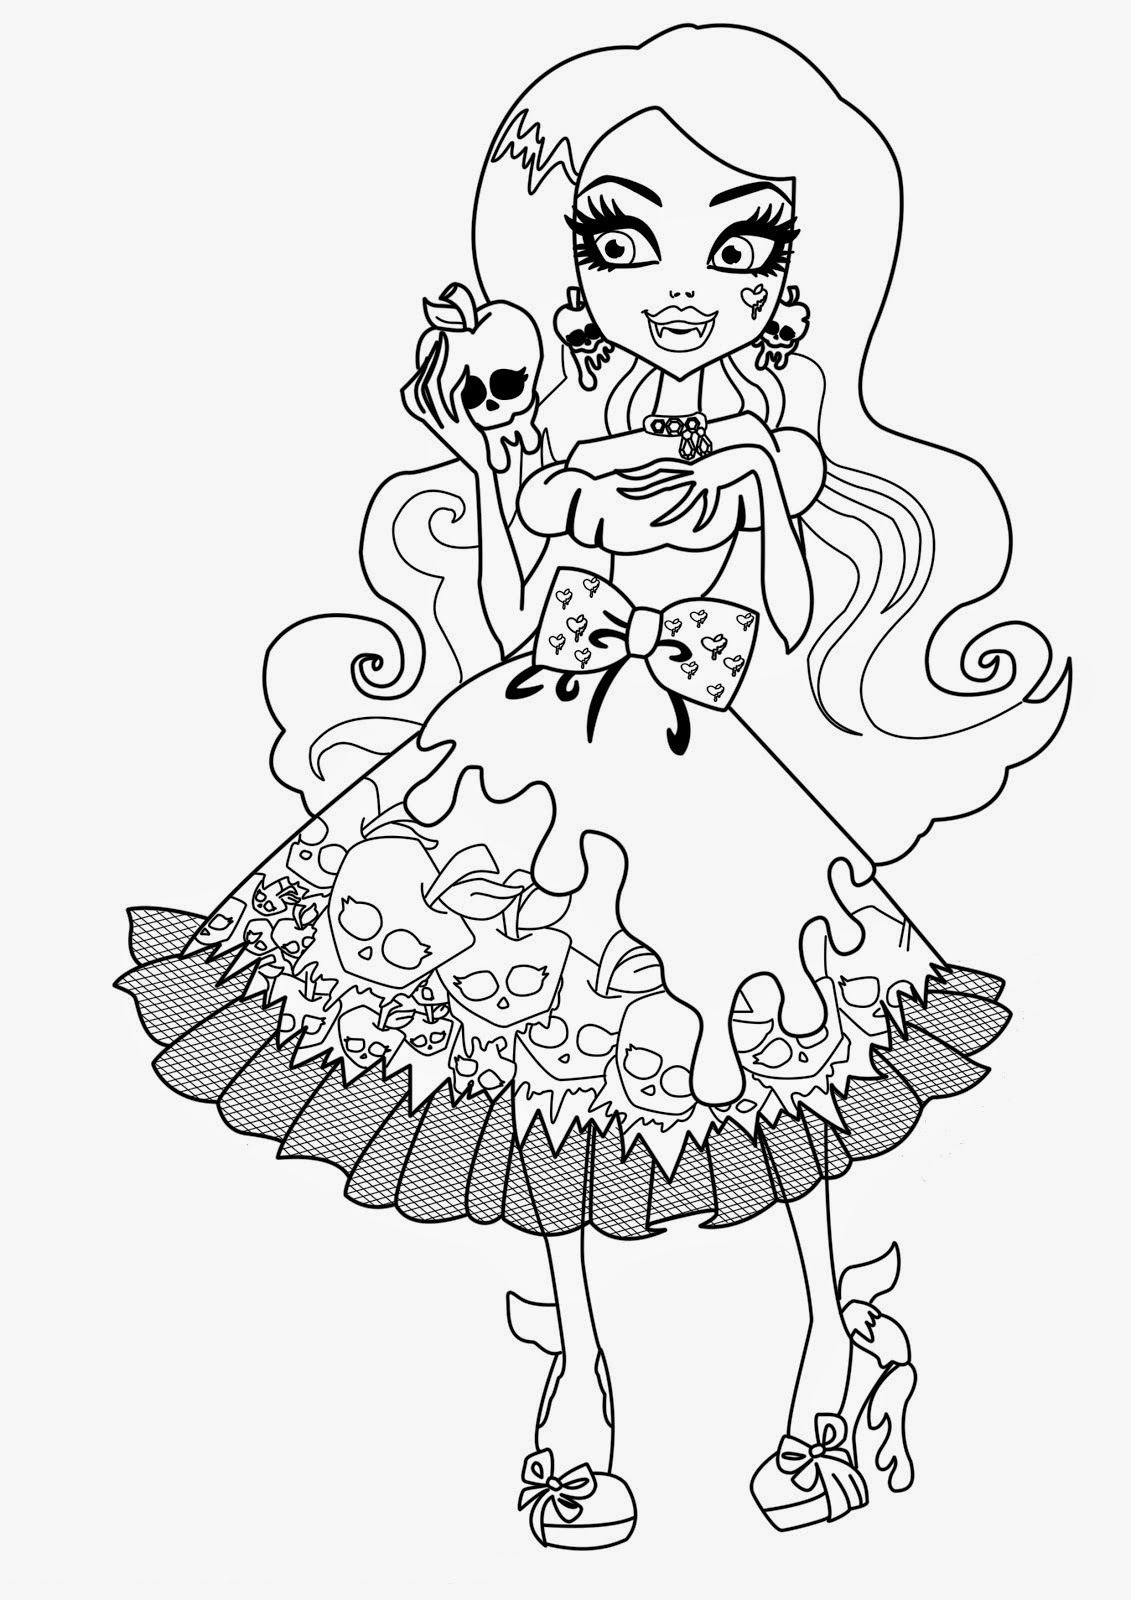 coloring pages monster high värityskuva monster high draculaura coloring pages getcoloringpagescom värityskuva monster coloring pages high